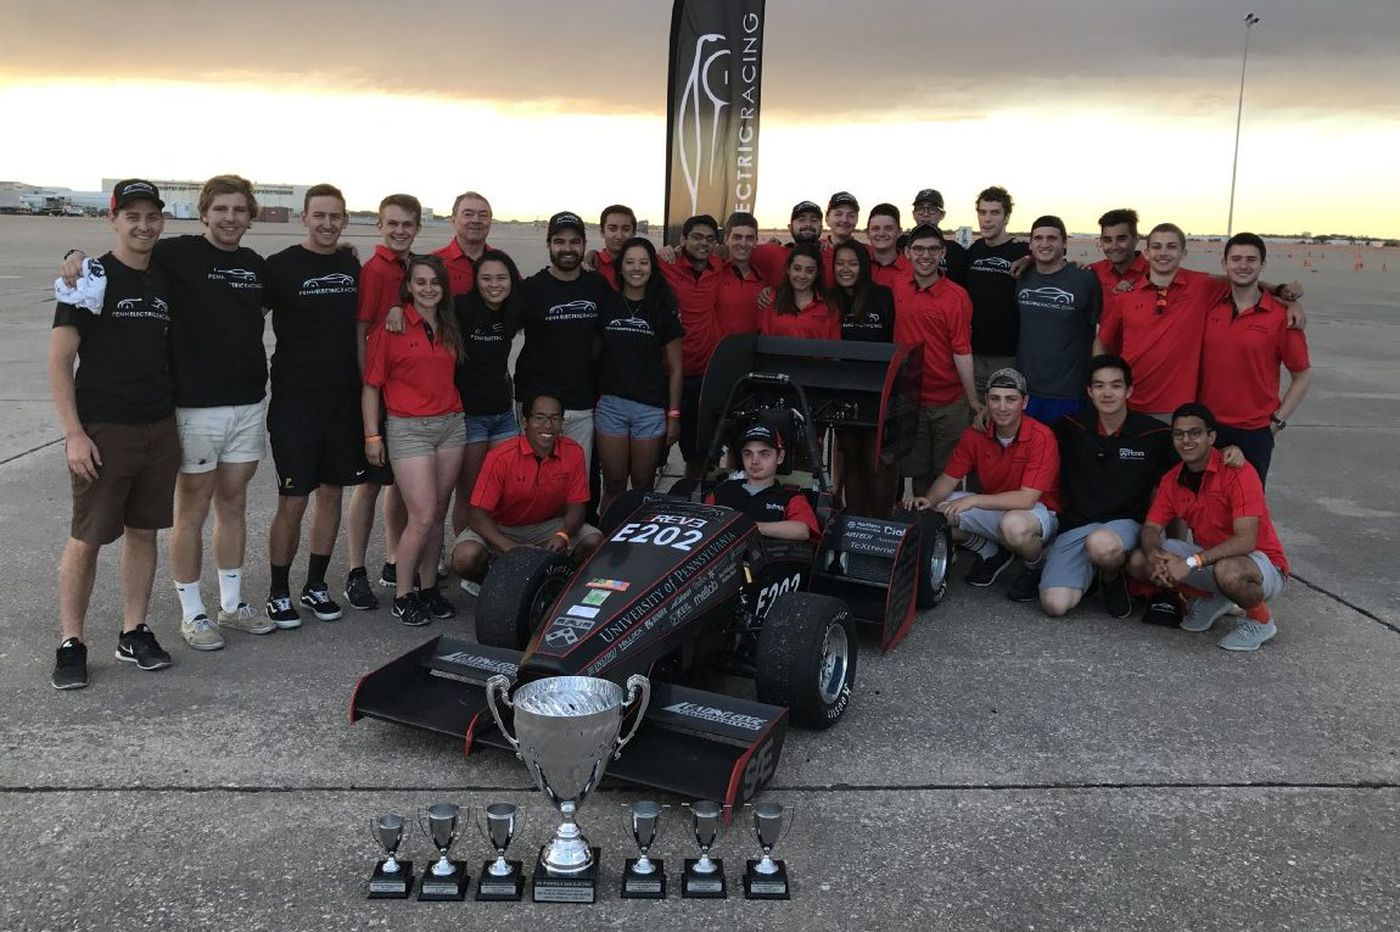 Penn students take gold with custom electric race car